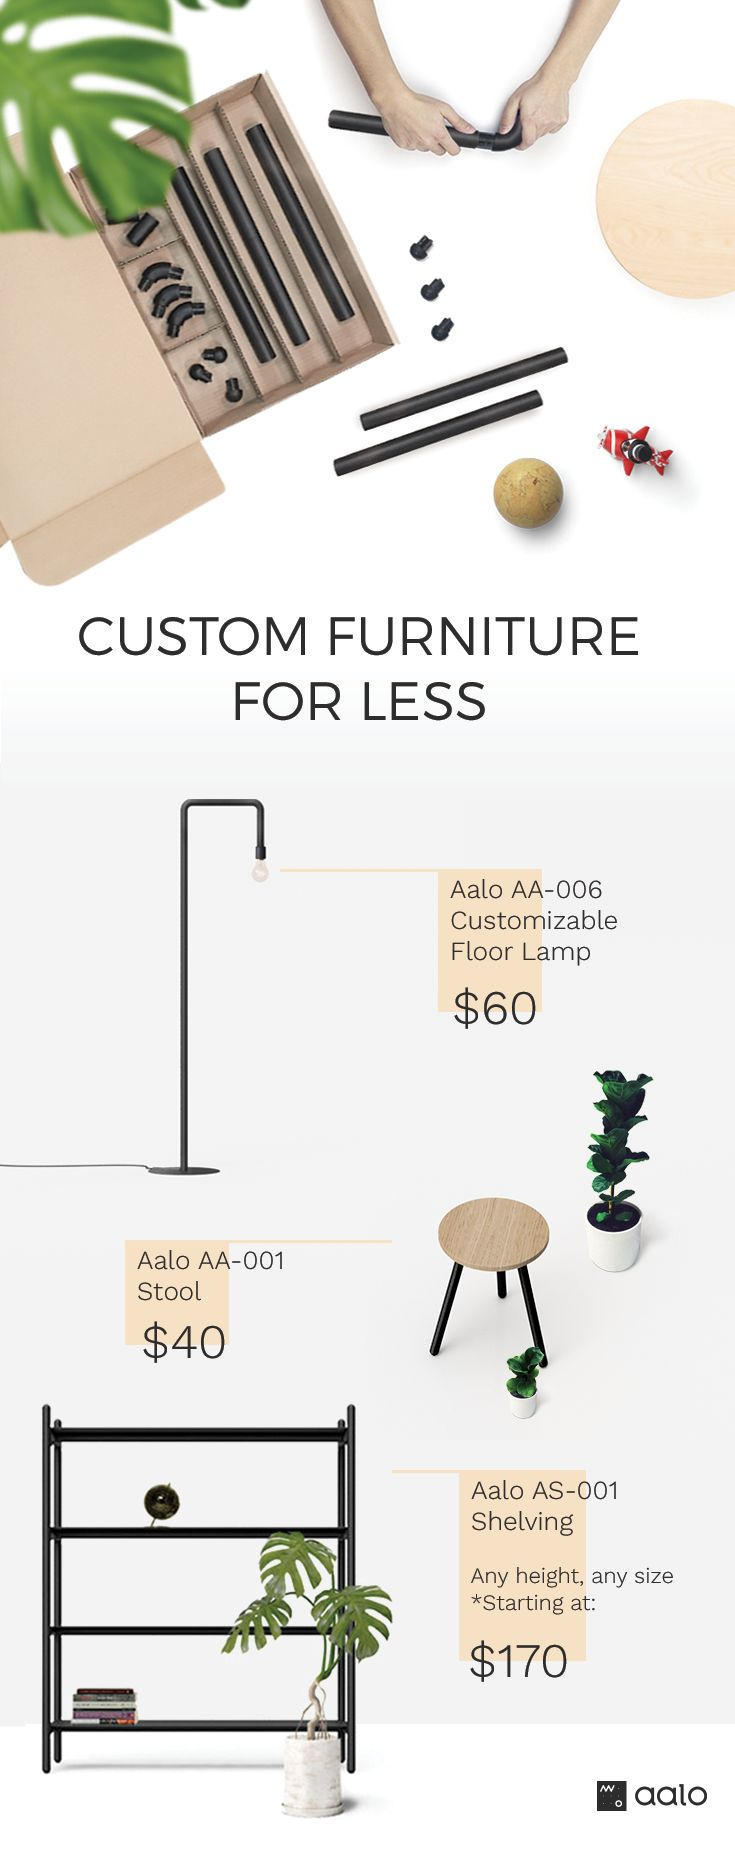 Premium quality designer furniture showroom to see touch and feel our - Fully Customizable High Quality Furniture At Affordable Prices Say No To Overpriced Uninspired